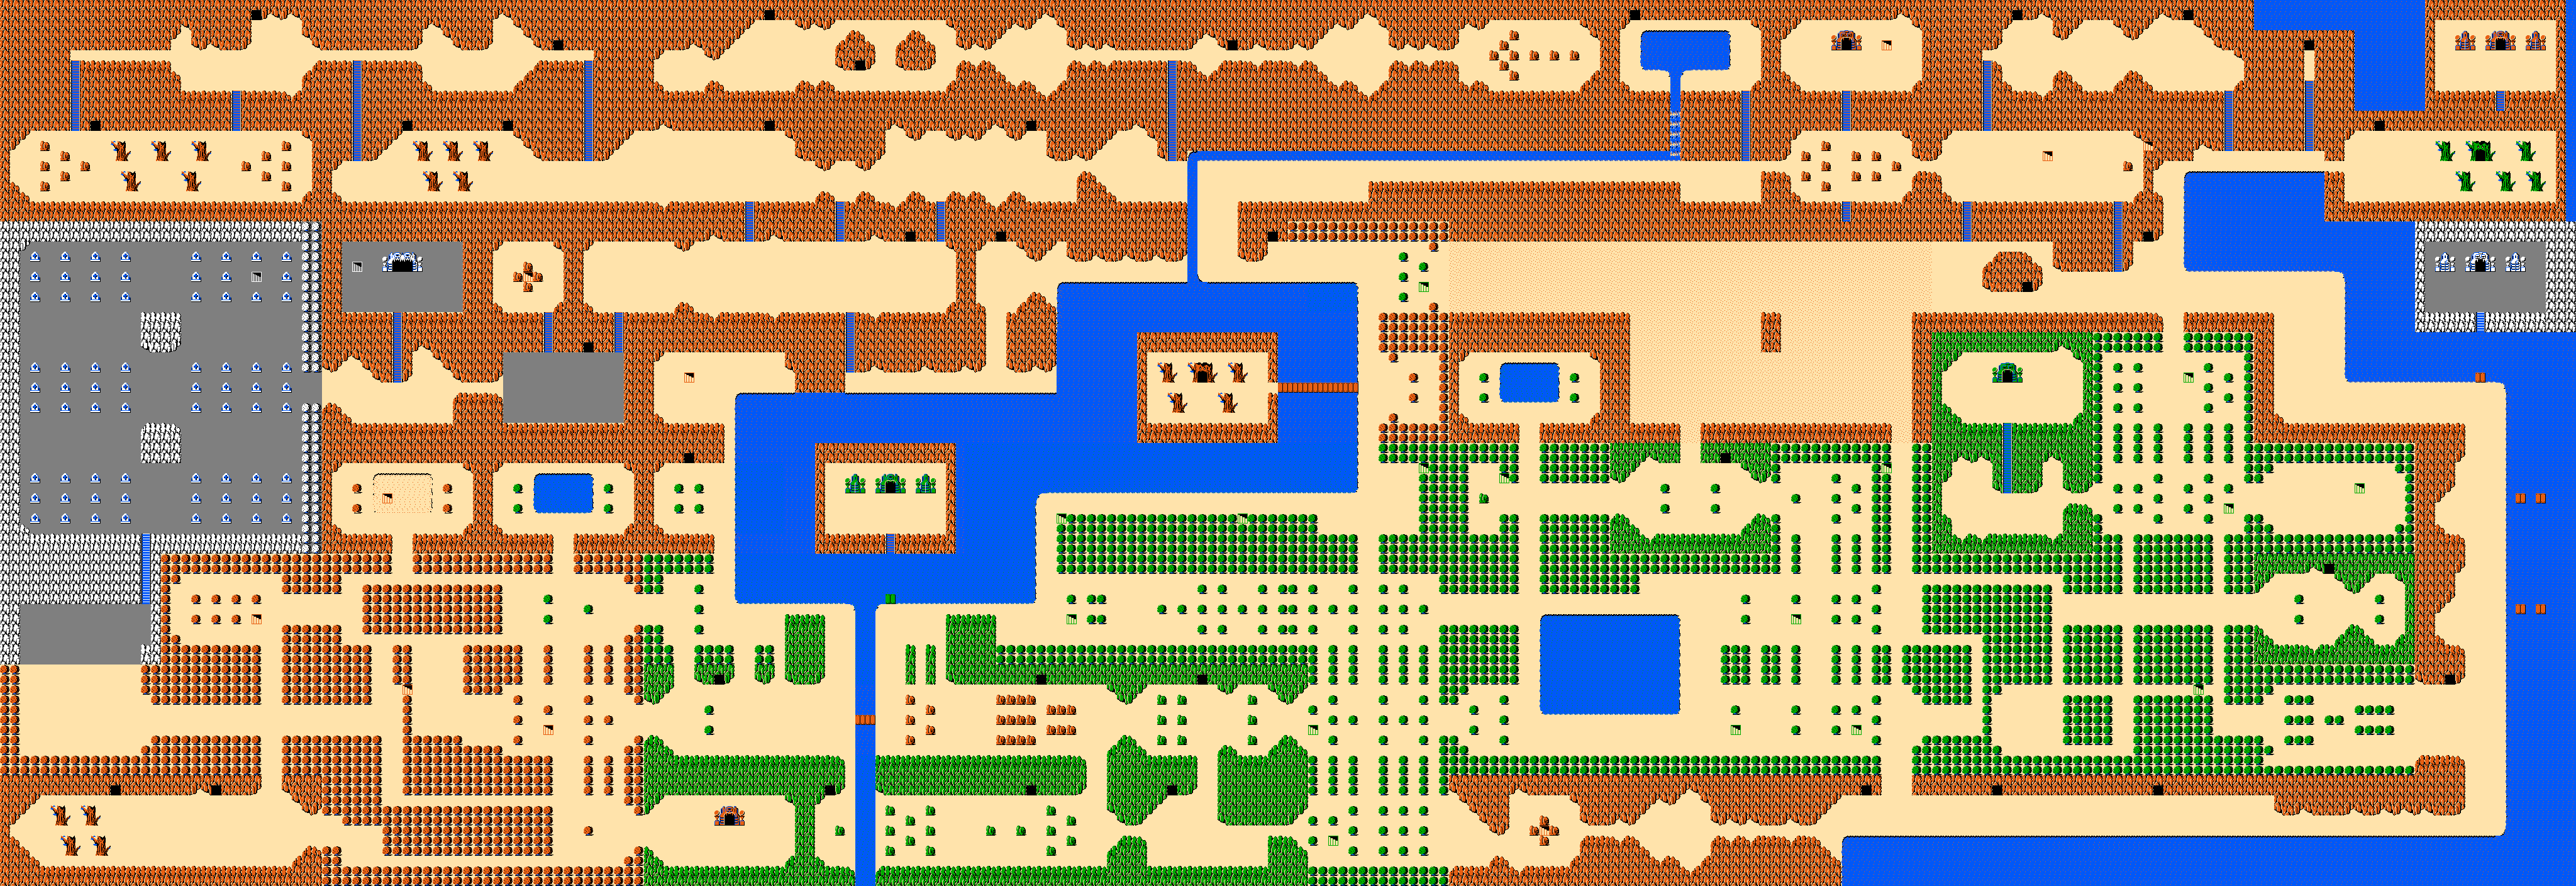 Legend Of Zelda World Map The Legend of Zelda World Maps